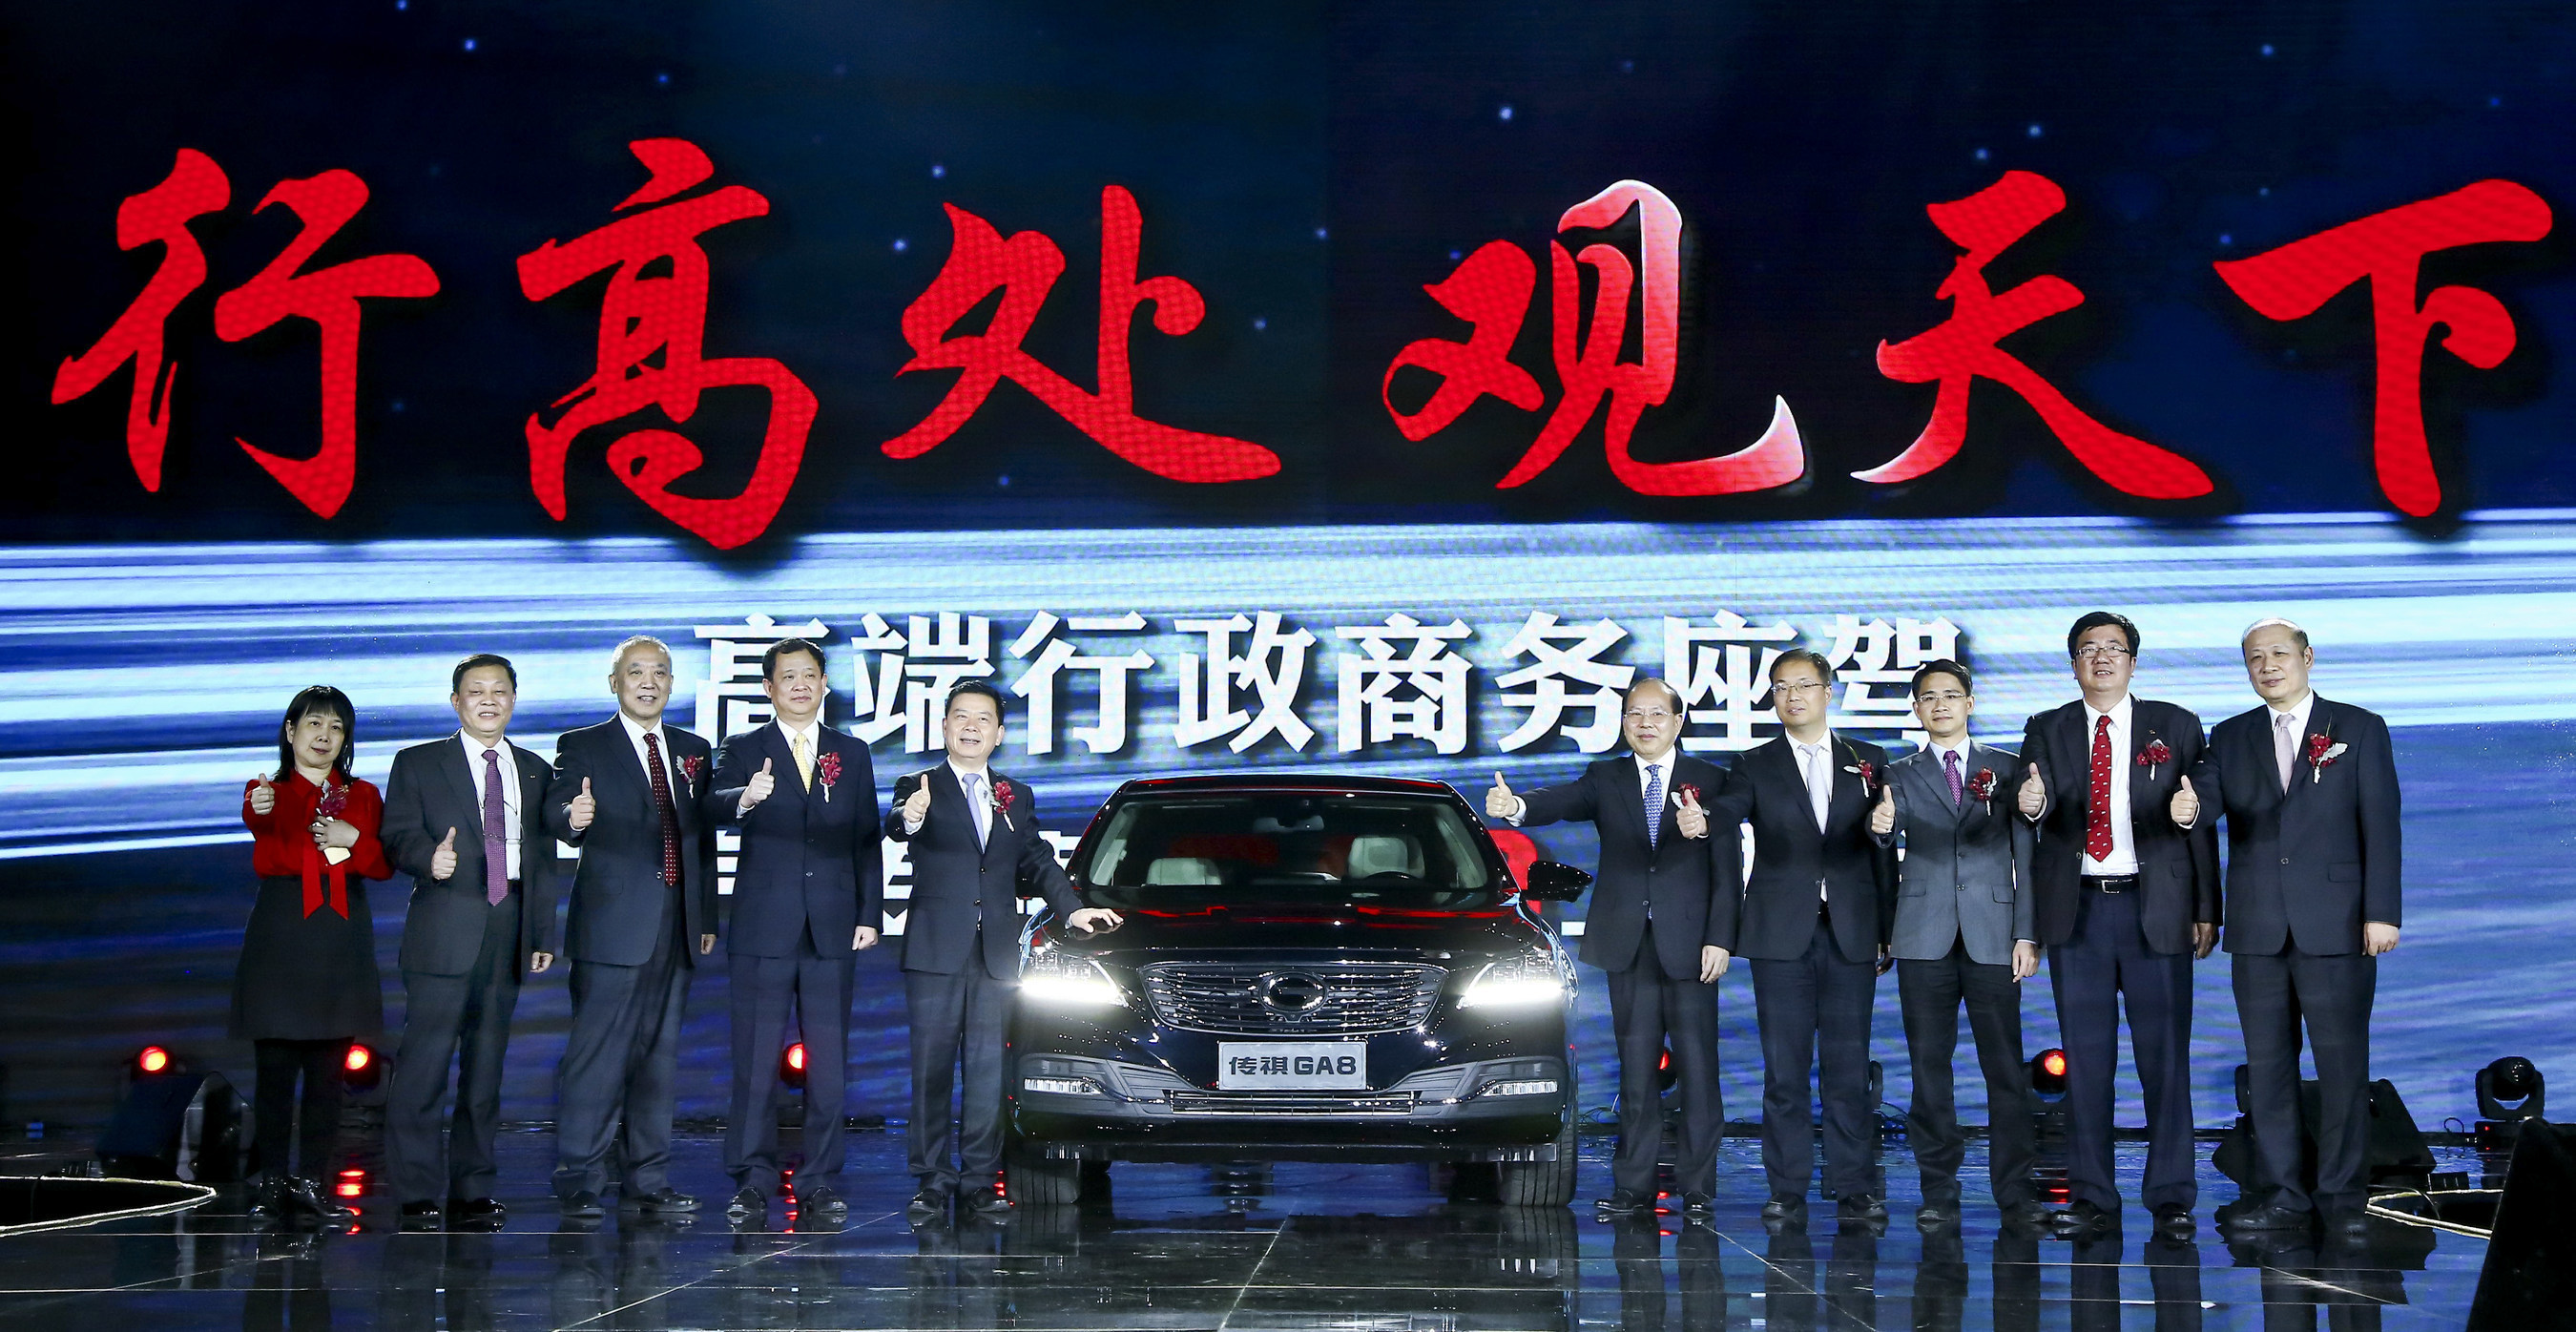 Guangzhou government officials and leaders of GAC pose beside the newly-launched high-end business sedan, the GA8